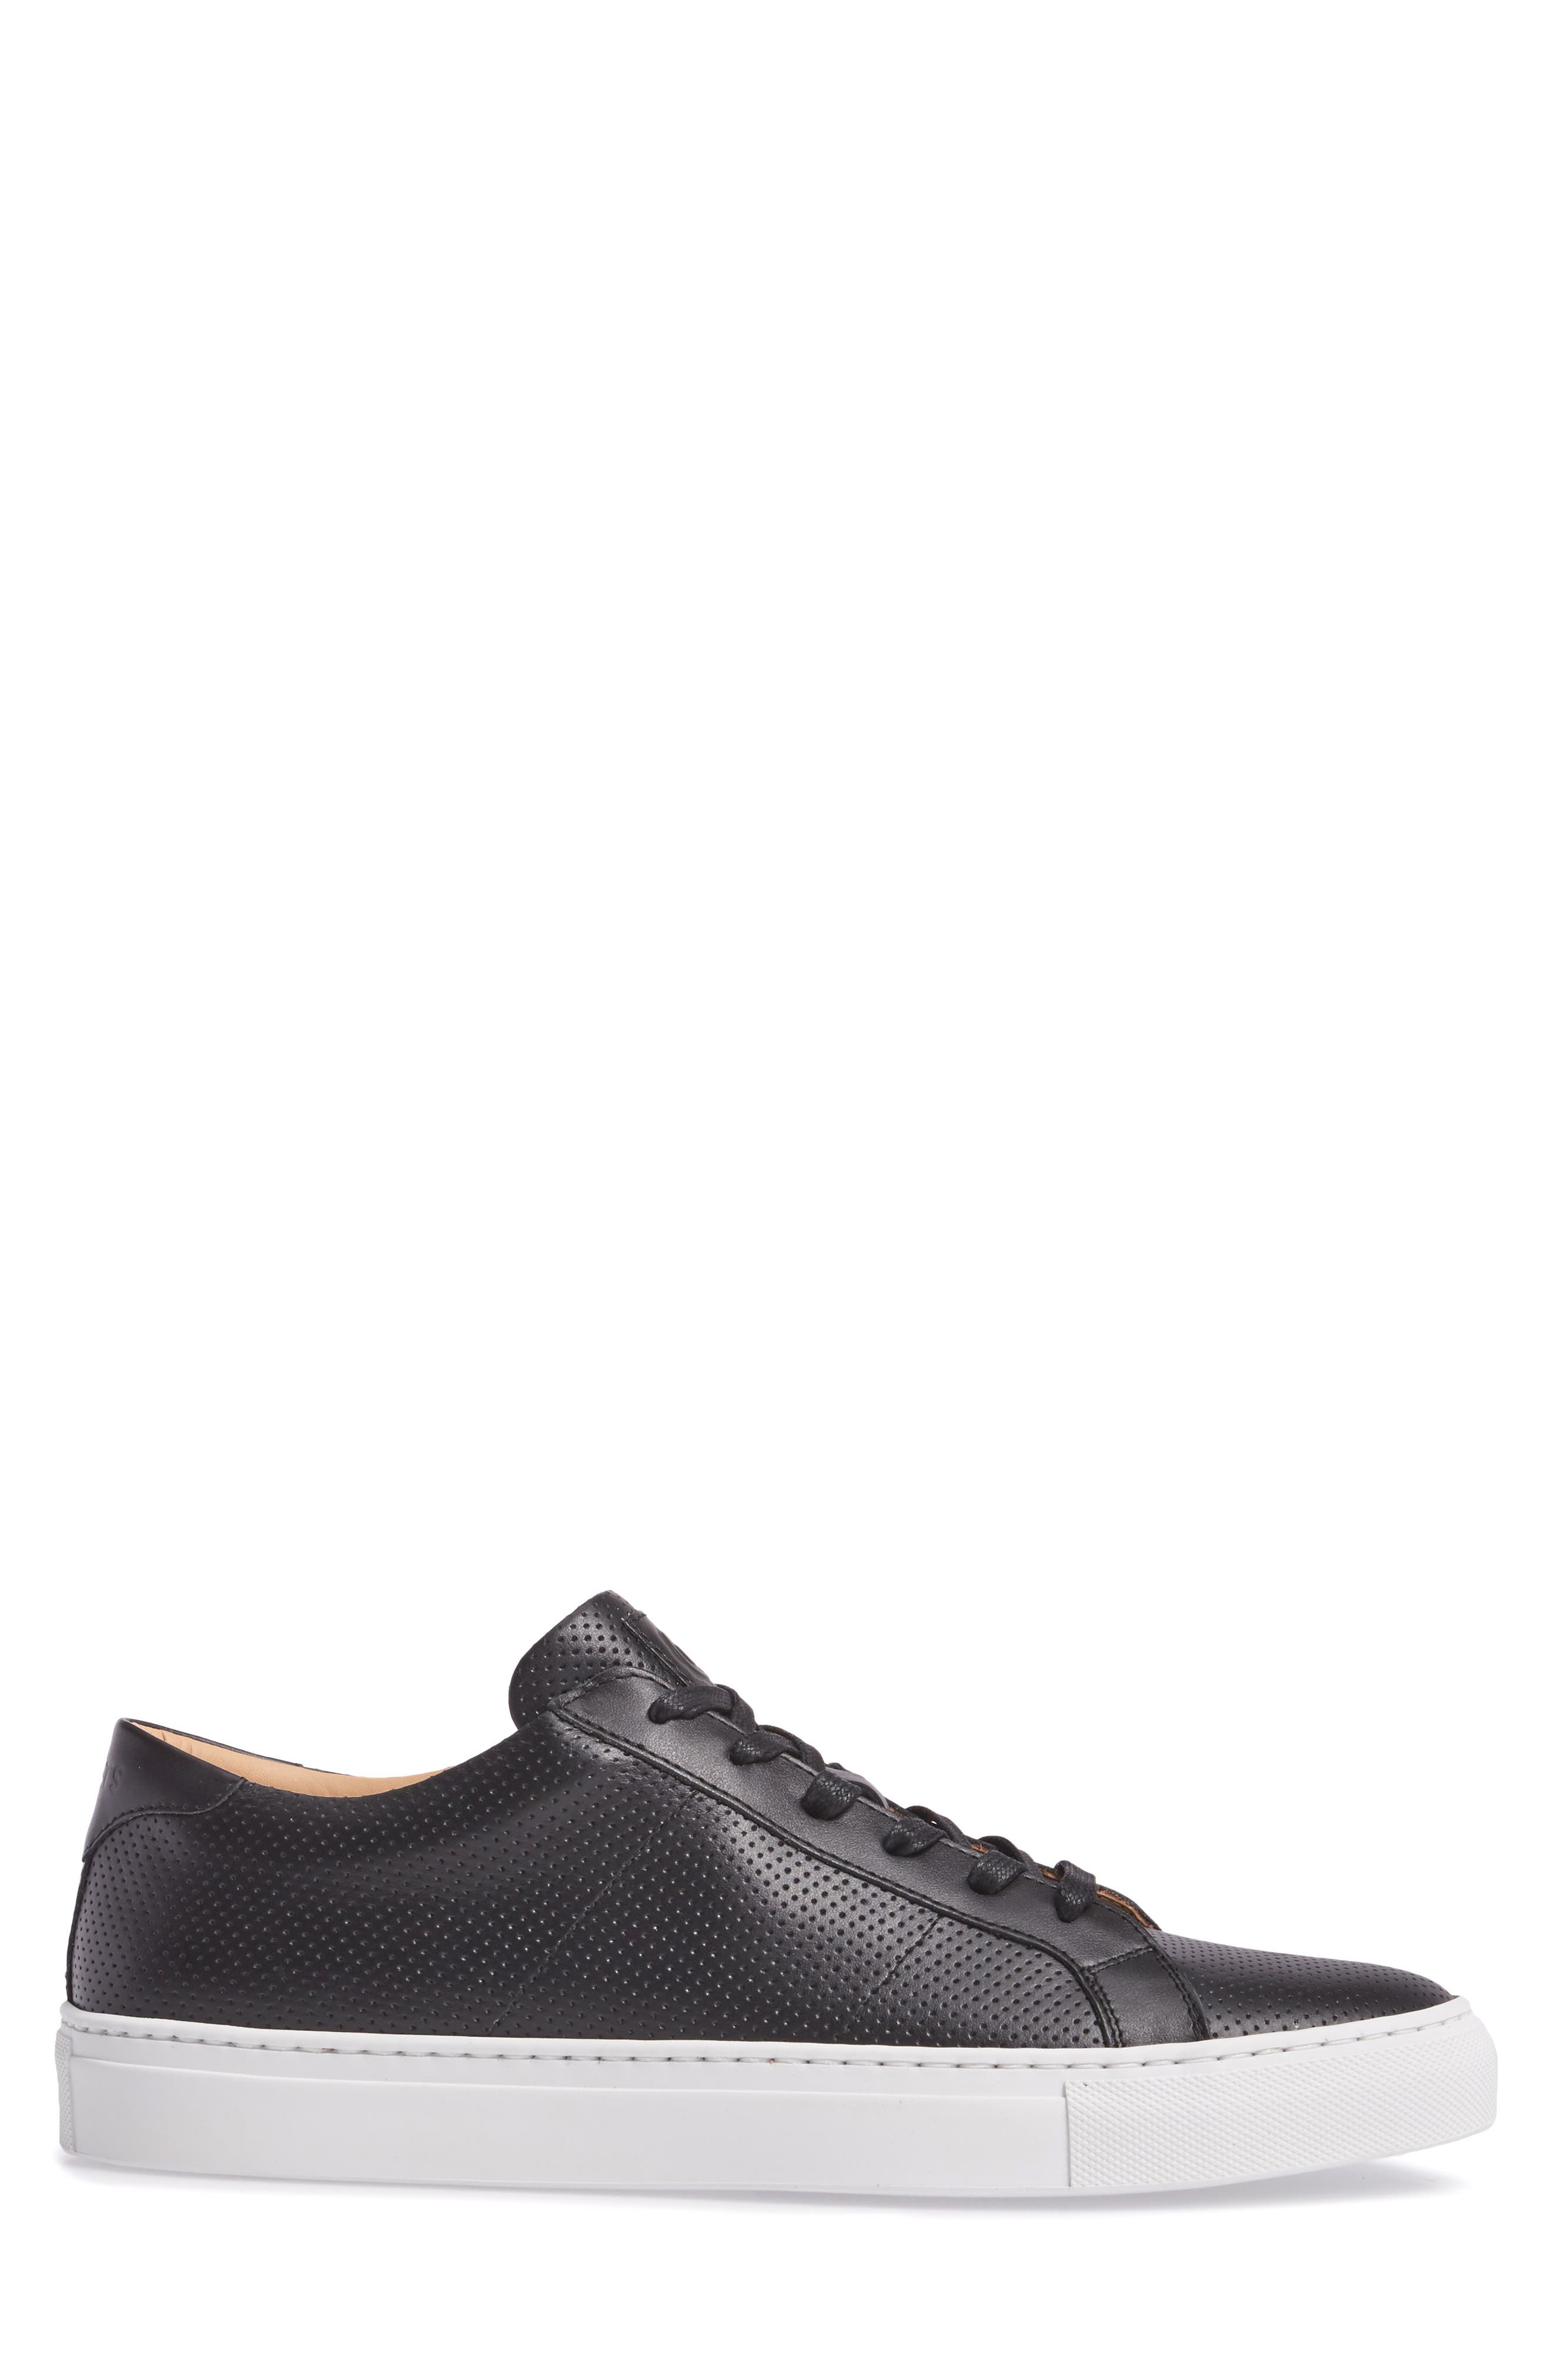 Royale Perforated Low Top Sneaker,                             Alternate thumbnail 3, color,                             001